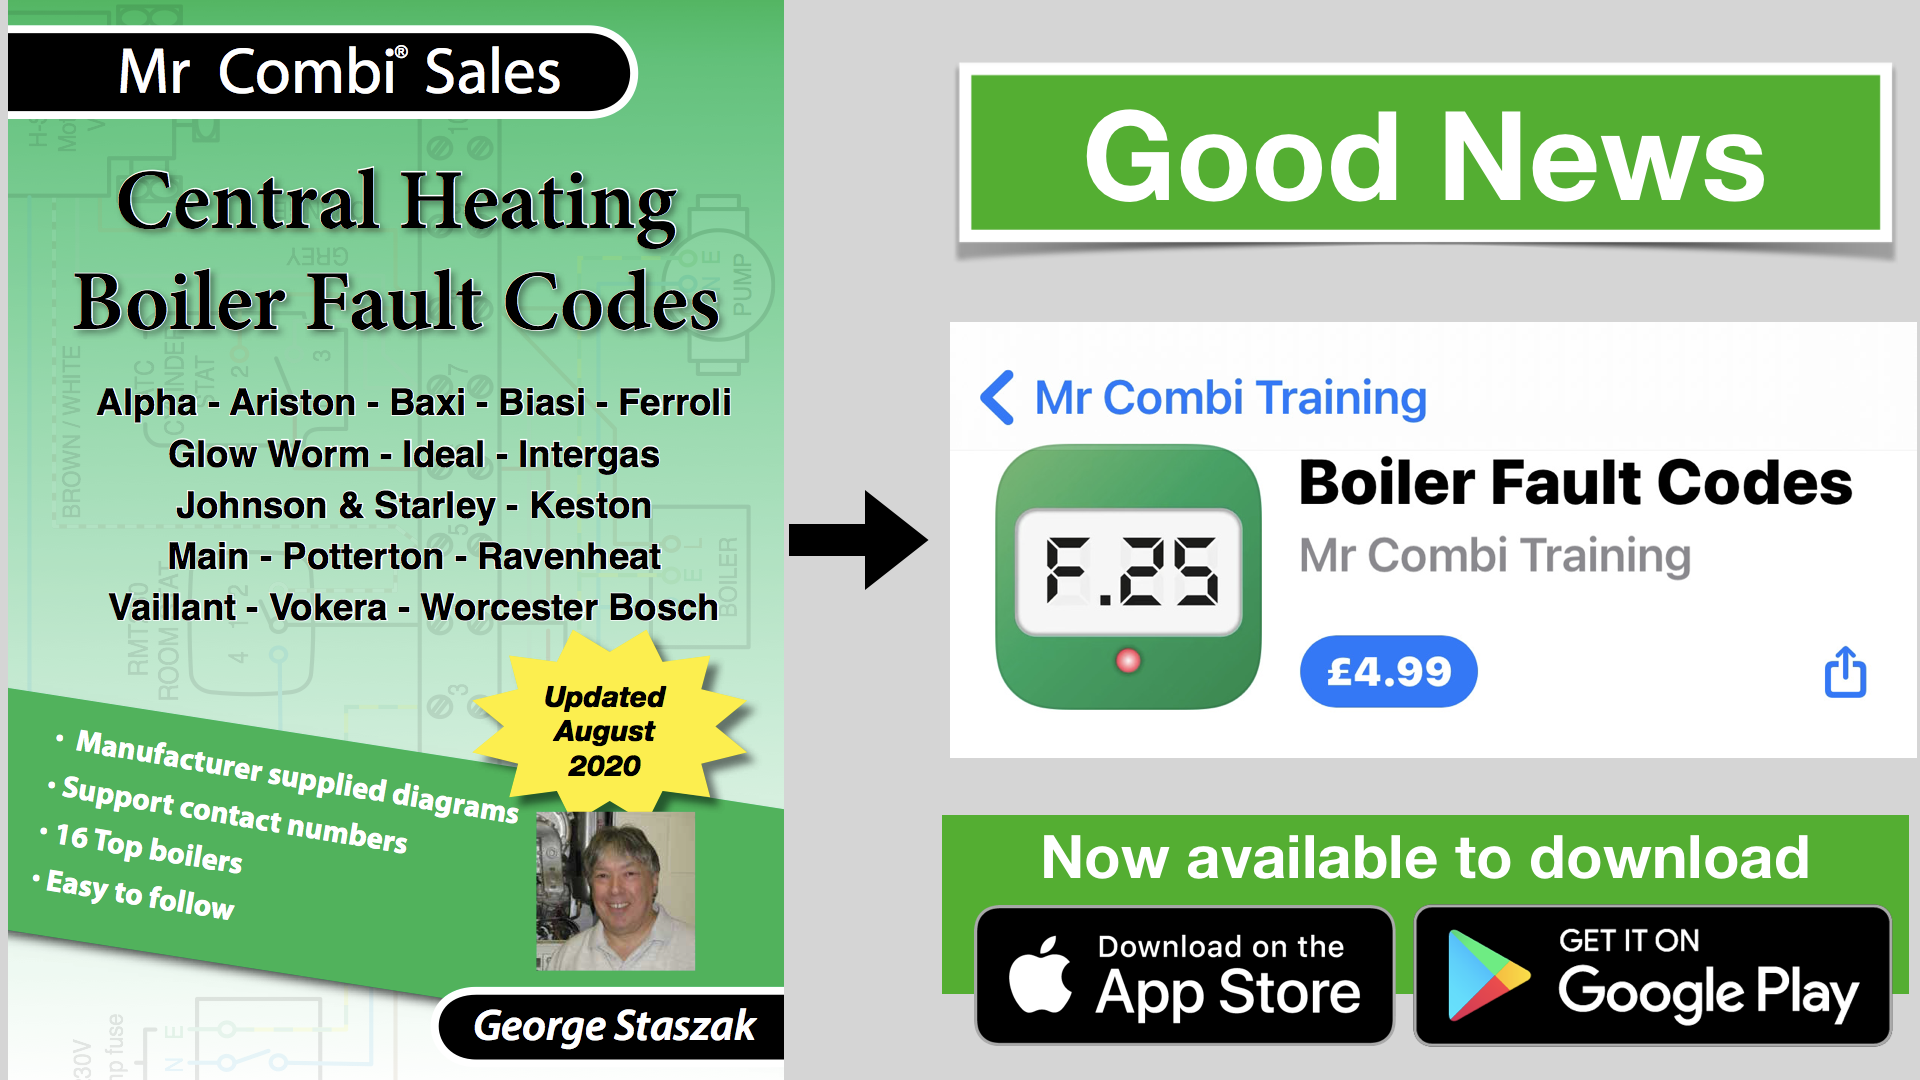 Central Heating Boiler Fault Codes App